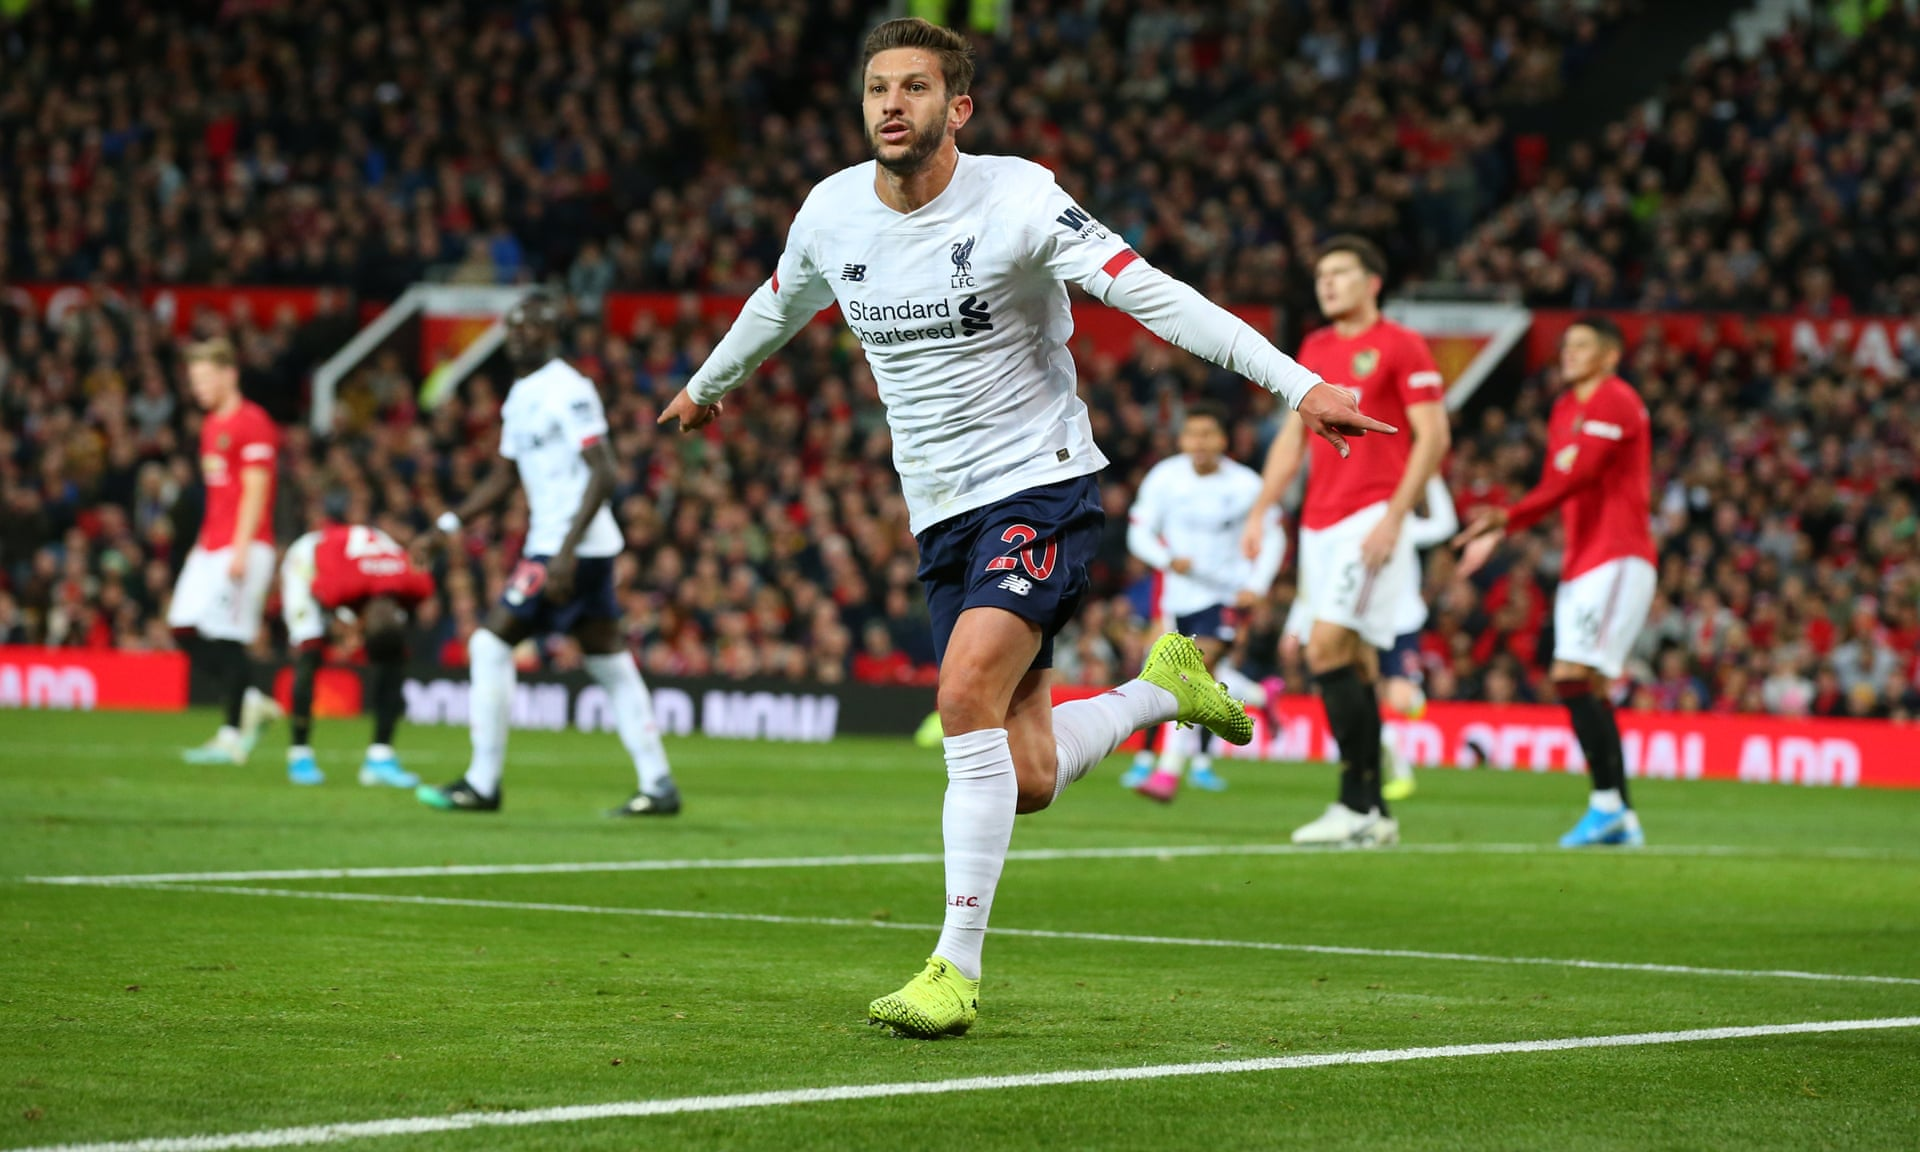 Lallana will be missed